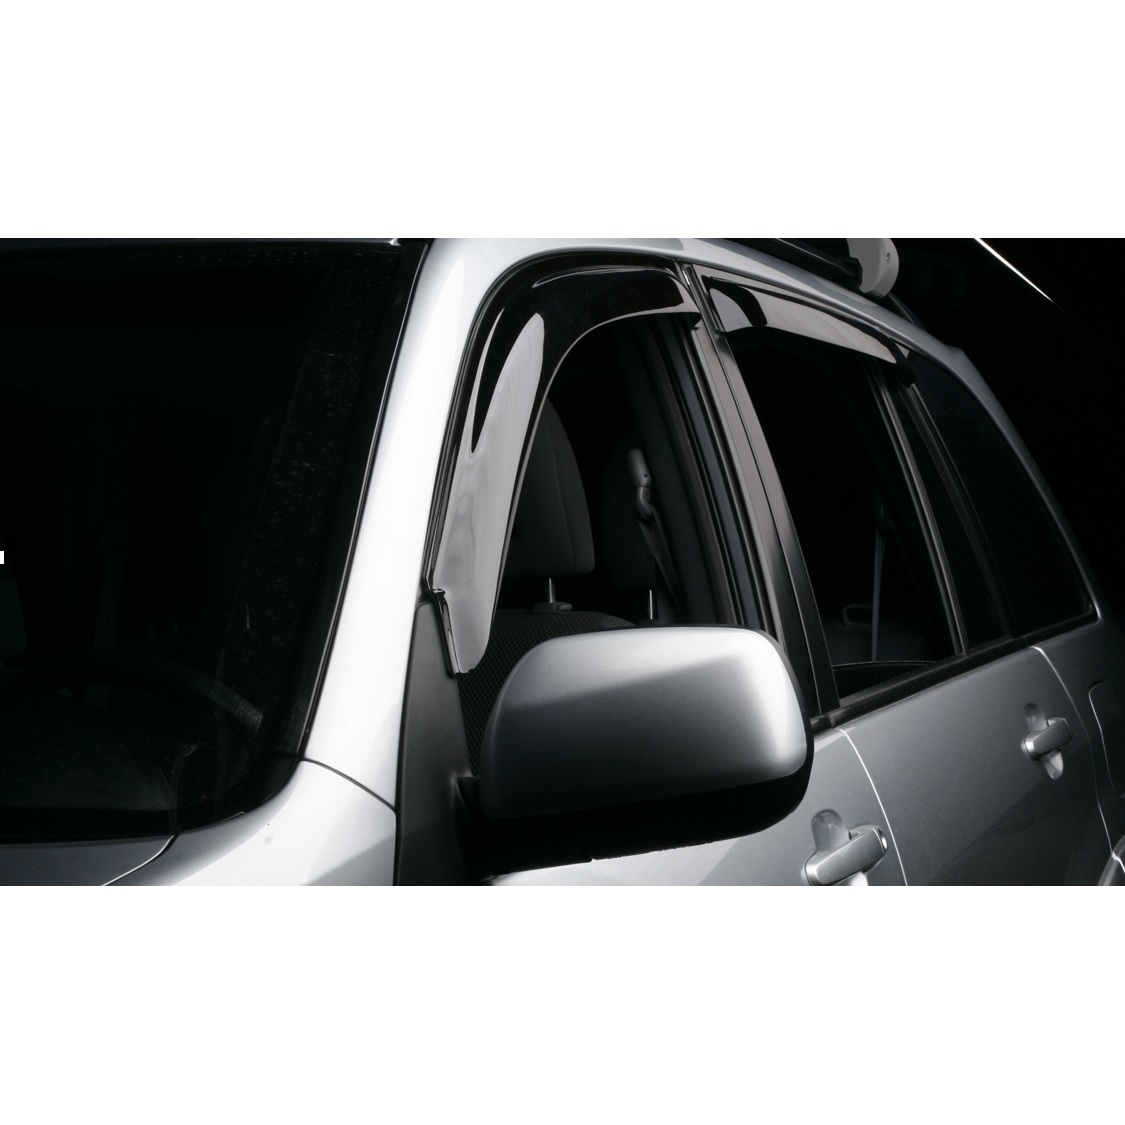 Window Deflectors For SUBARU FORESTER 2013-2018, NLD. SSUFOR1332